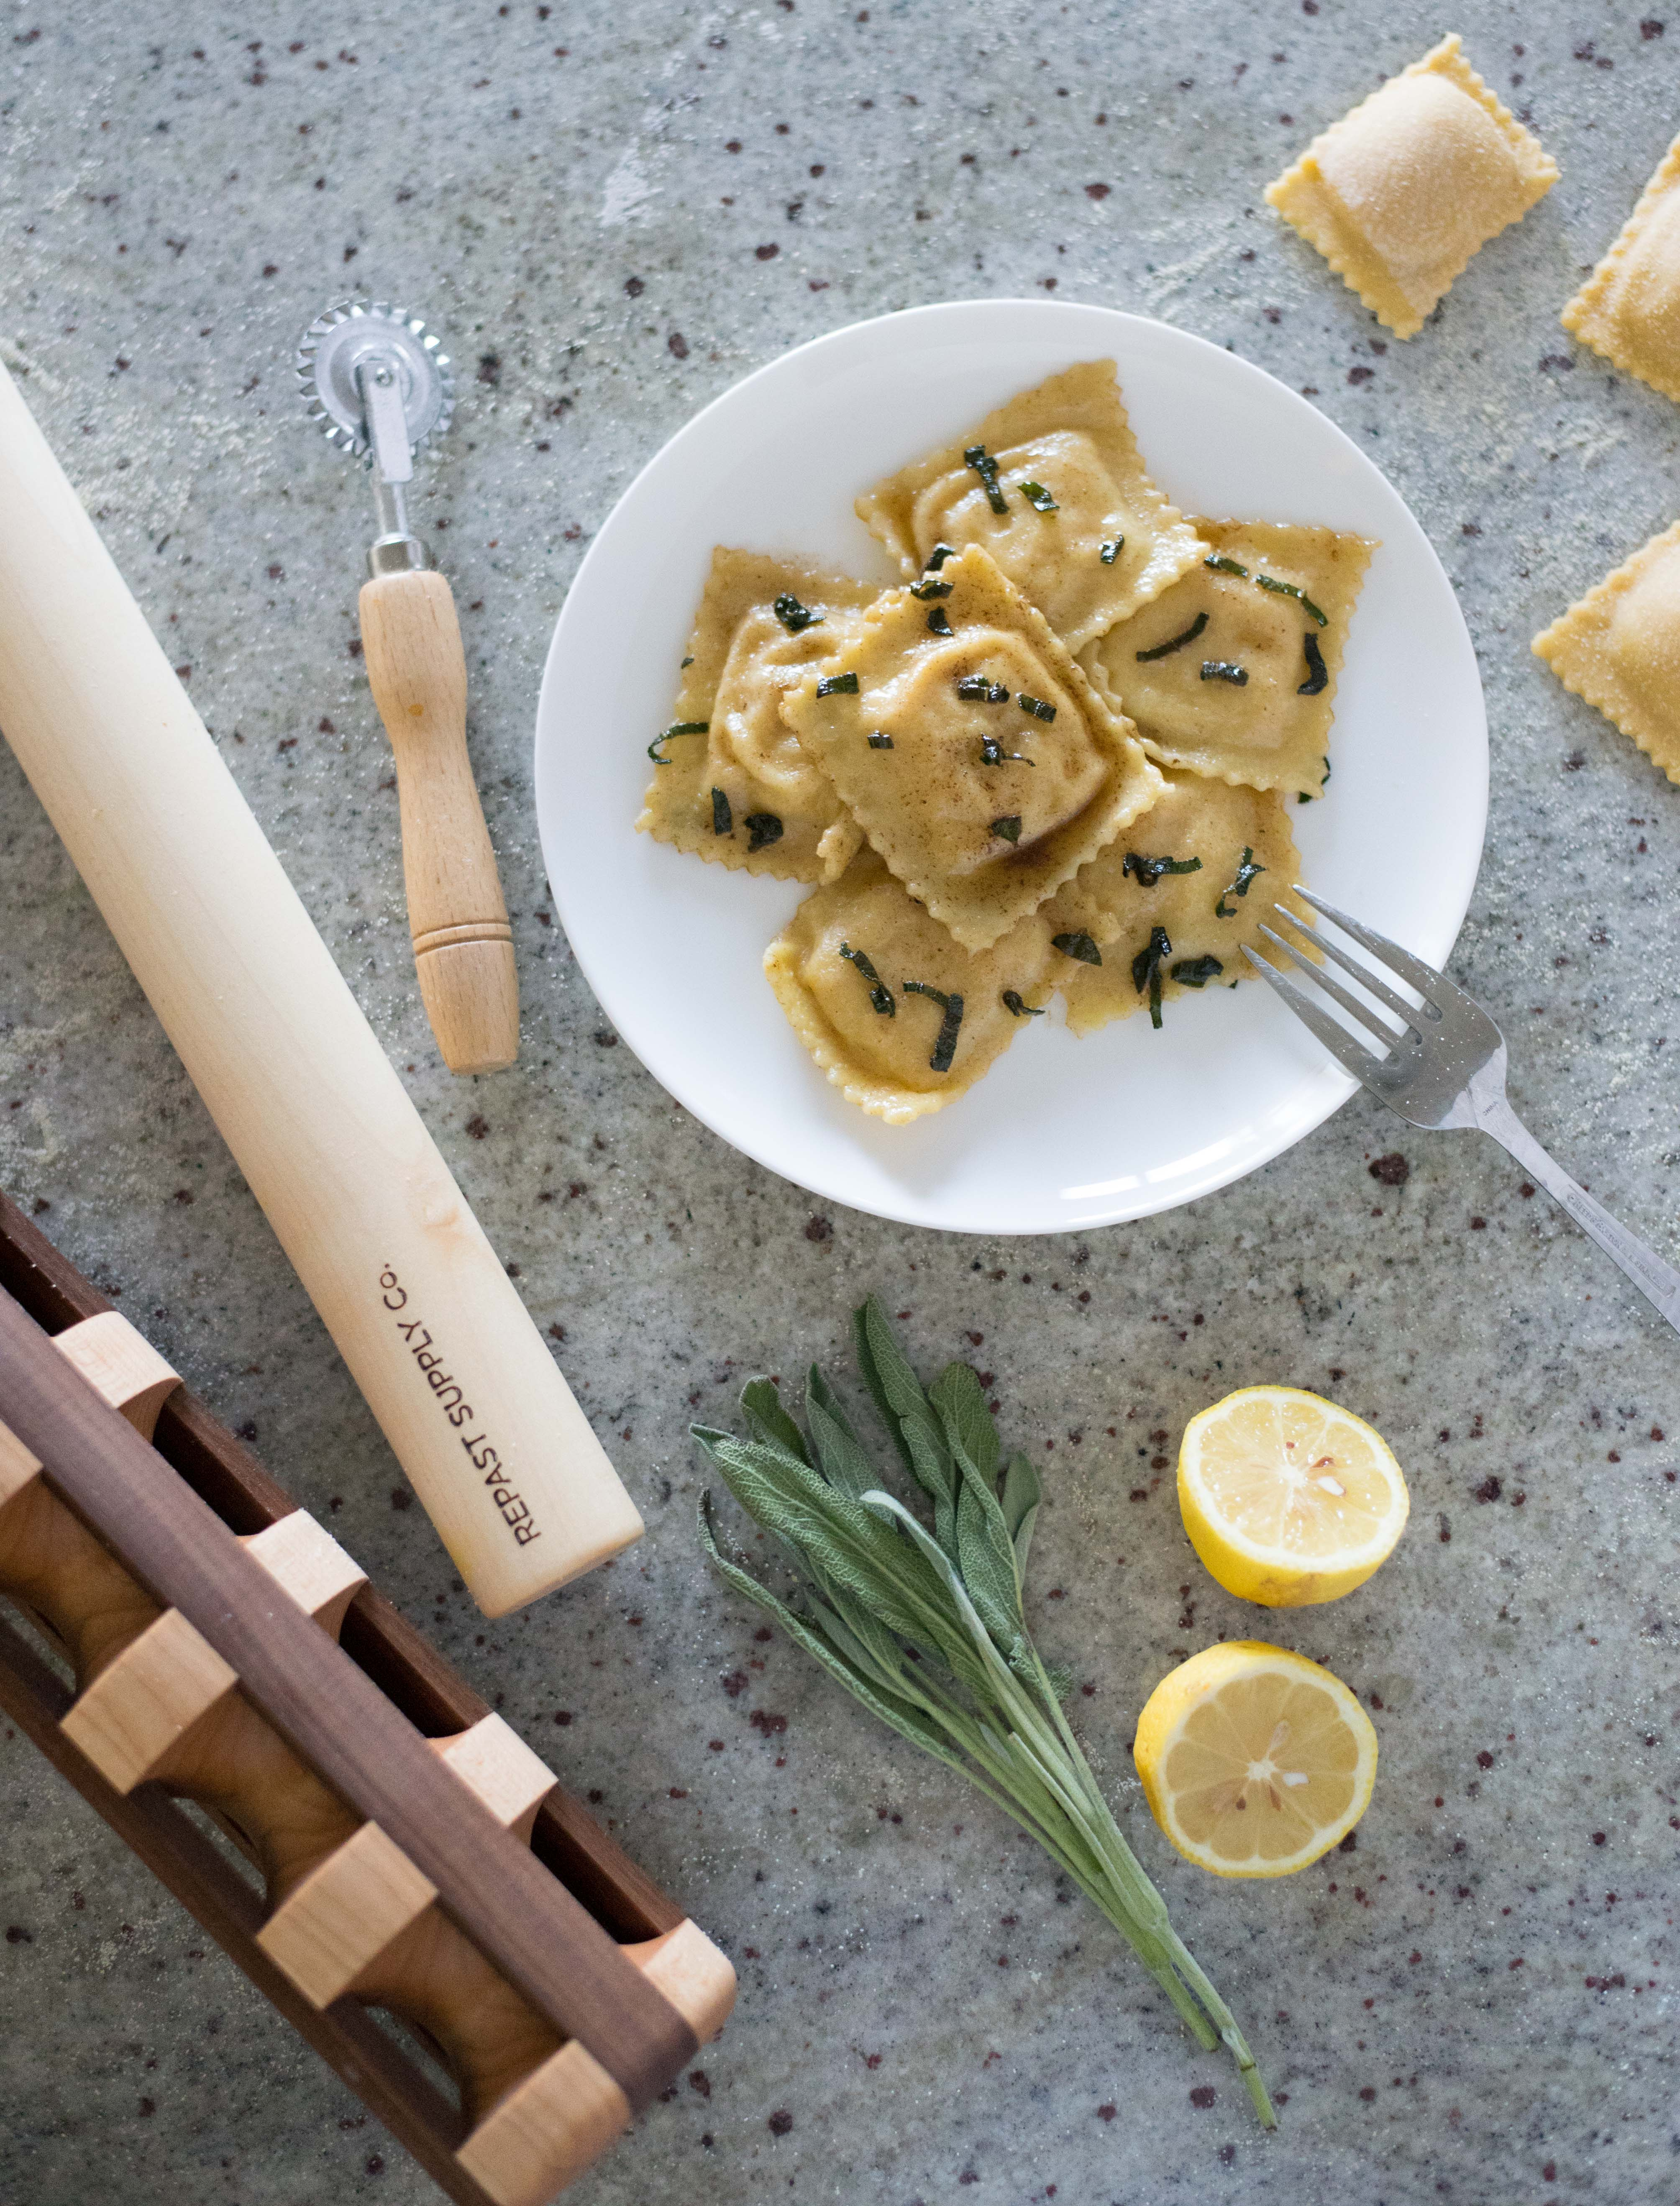 Product photography repast supply co ravioli tools